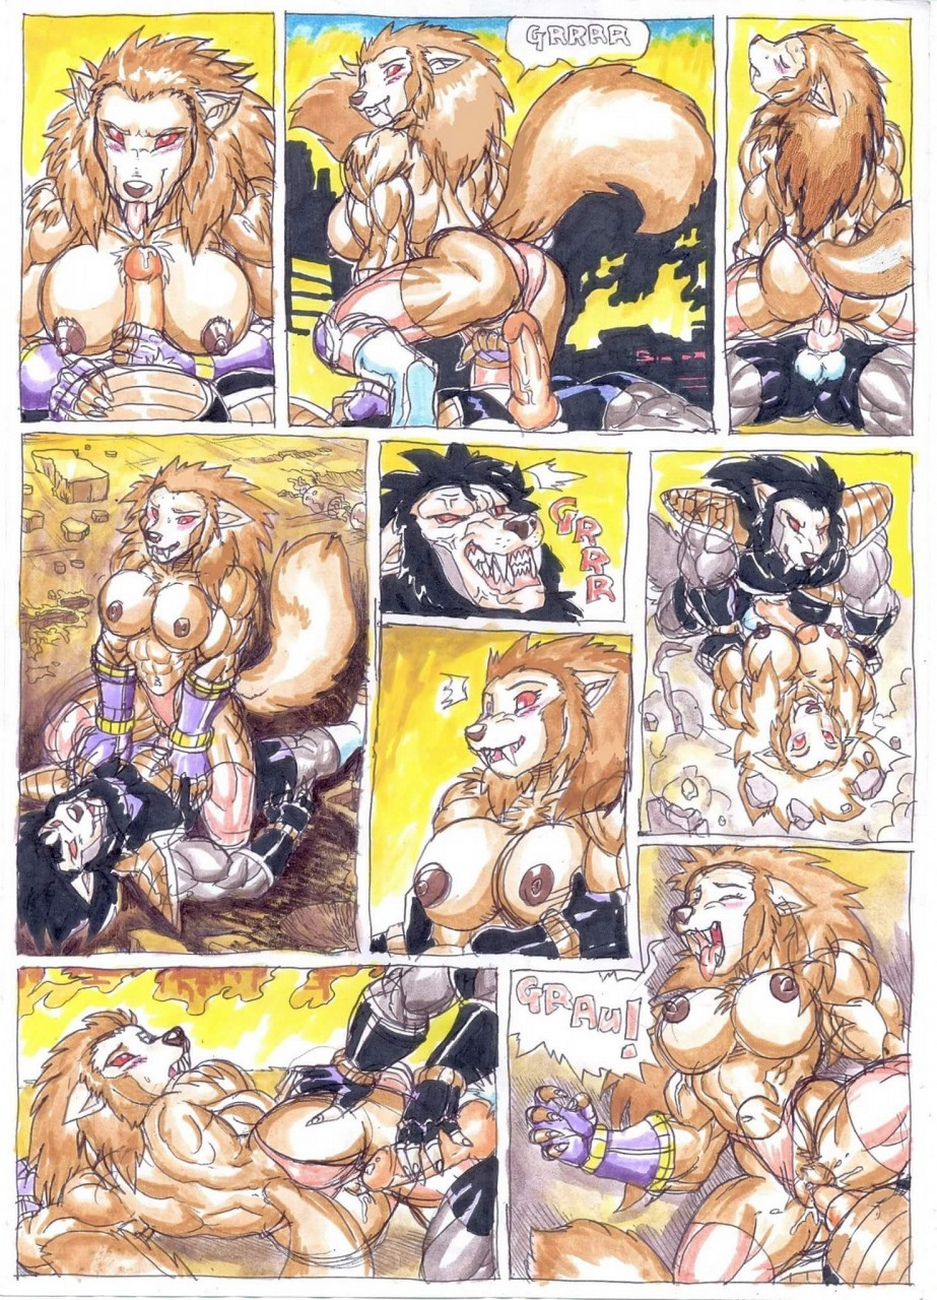 Bad-Moon-Rising 8 free sex comic